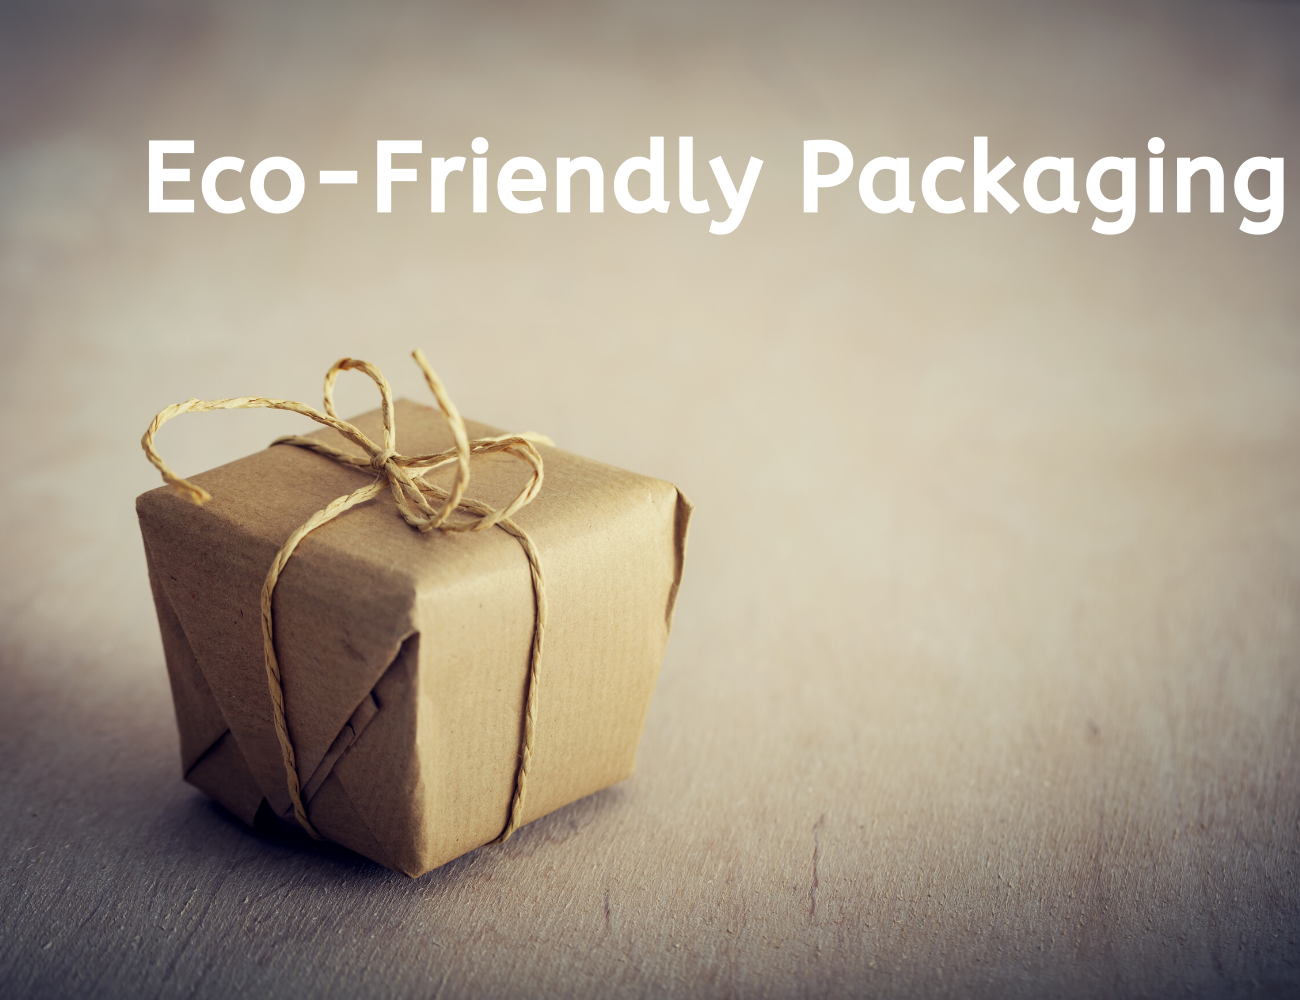 """Parcel wrapped in brown paper and tied with natural twine next to the words """"Eco-friendly packaging""""."""